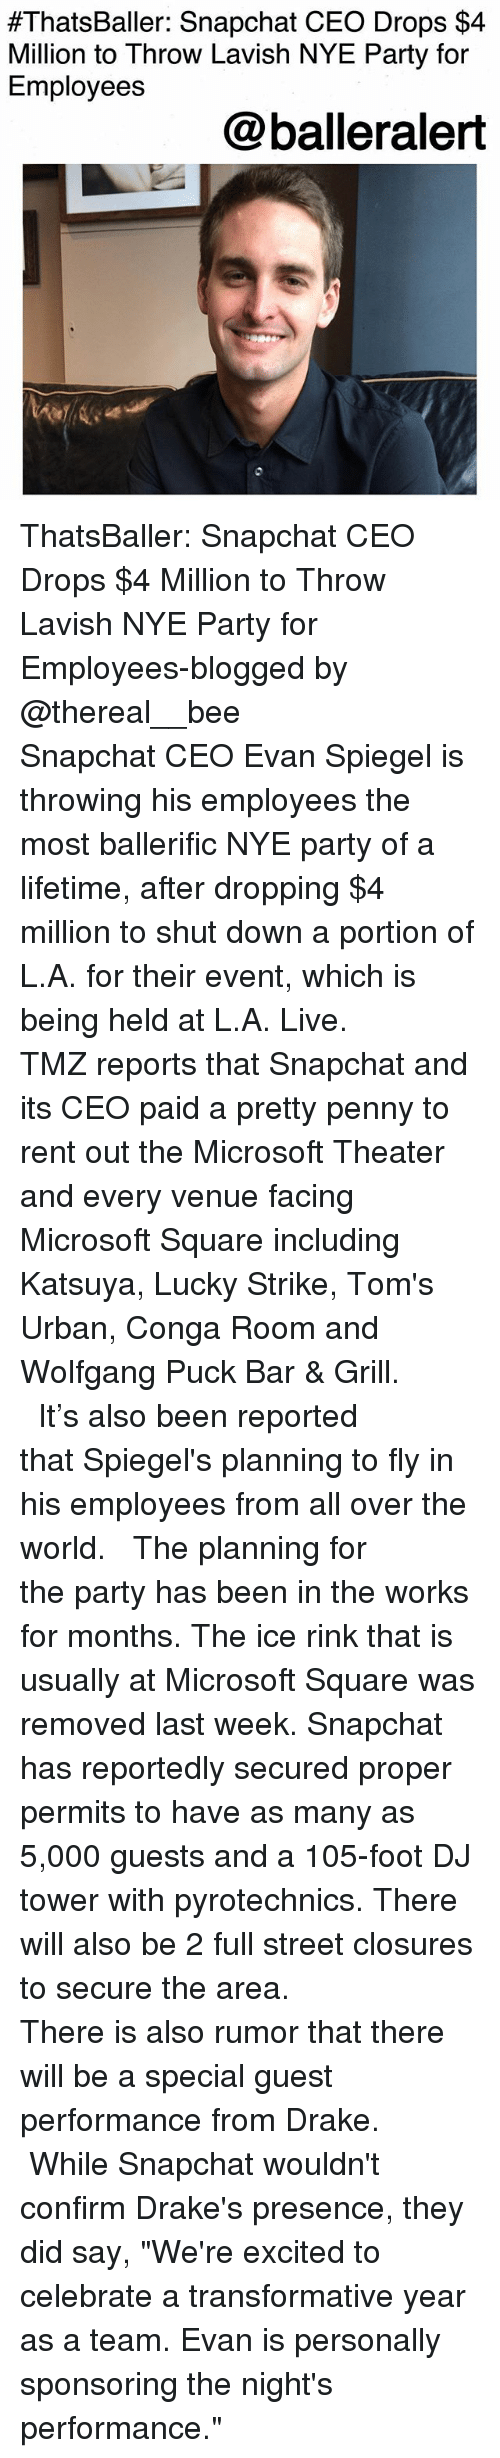 """Toms:  #ThatsBaller: Snapchat CEO Drops $4  Million to Throw Lavish NYE Party for  Employees  @balleralert ThatsBaller: Snapchat CEO Drops $4 Million to Throw Lavish NYE Party for Employees-blogged by @thereal__bee ⠀⠀⠀⠀⠀⠀⠀⠀⠀ ⠀⠀ Snapchat CEO Evan Spiegel is throwing his employees the most ballerific NYE party of a lifetime, after dropping $4 million to shut down a portion of L.A. for their event, which is being held at L.A. Live. ⠀⠀⠀⠀⠀⠀⠀⠀⠀ ⠀⠀ TMZ reports that Snapchat and its CEO paid a pretty penny to rent out the Microsoft Theater and every venue facing Microsoft Square including Katsuya, Lucky Strike, Tom's Urban, Conga Room and Wolfgang Puck Bar & Grill. ⠀⠀⠀⠀⠀⠀⠀⠀⠀ ⠀⠀ It's also been reported that Spiegel's planning to fly in his employees from all over the world. ⠀⠀⠀⠀⠀⠀⠀⠀⠀ ⠀⠀ The planning for the party has been in the works for months. The ice rink that is usually at Microsoft Square was removed last week. Snapchat has reportedly secured proper permits to have as many as 5,000 guests and a 105-foot DJ tower with pyrotechnics. There will also be 2 full street closures to secure the area. ⠀⠀⠀⠀⠀⠀⠀⠀⠀ ⠀⠀ There is also rumor that there will be a special guest performance from Drake. ⠀⠀⠀⠀⠀⠀⠀⠀⠀ ⠀⠀ While Snapchat wouldn't confirm Drake's presence, they did say, """"We're excited to celebrate a transformative year as a team. Evan is personally sponsoring the night's performance."""""""